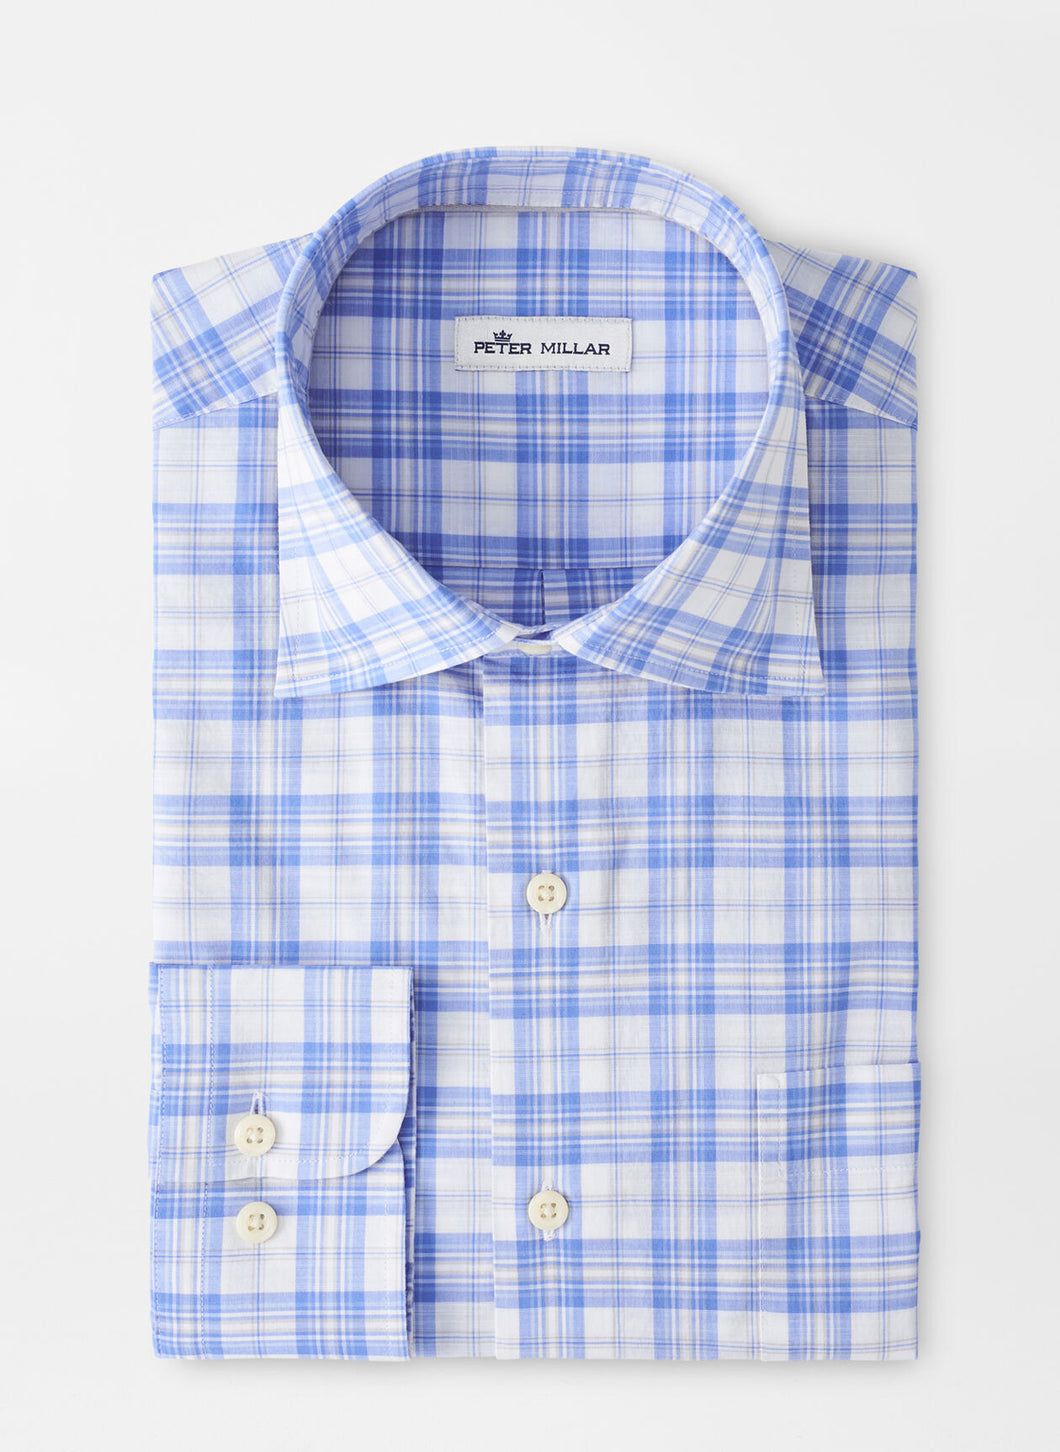 Peter Millar Levin Cotton-Blend Sport Shirt in Blue Sea